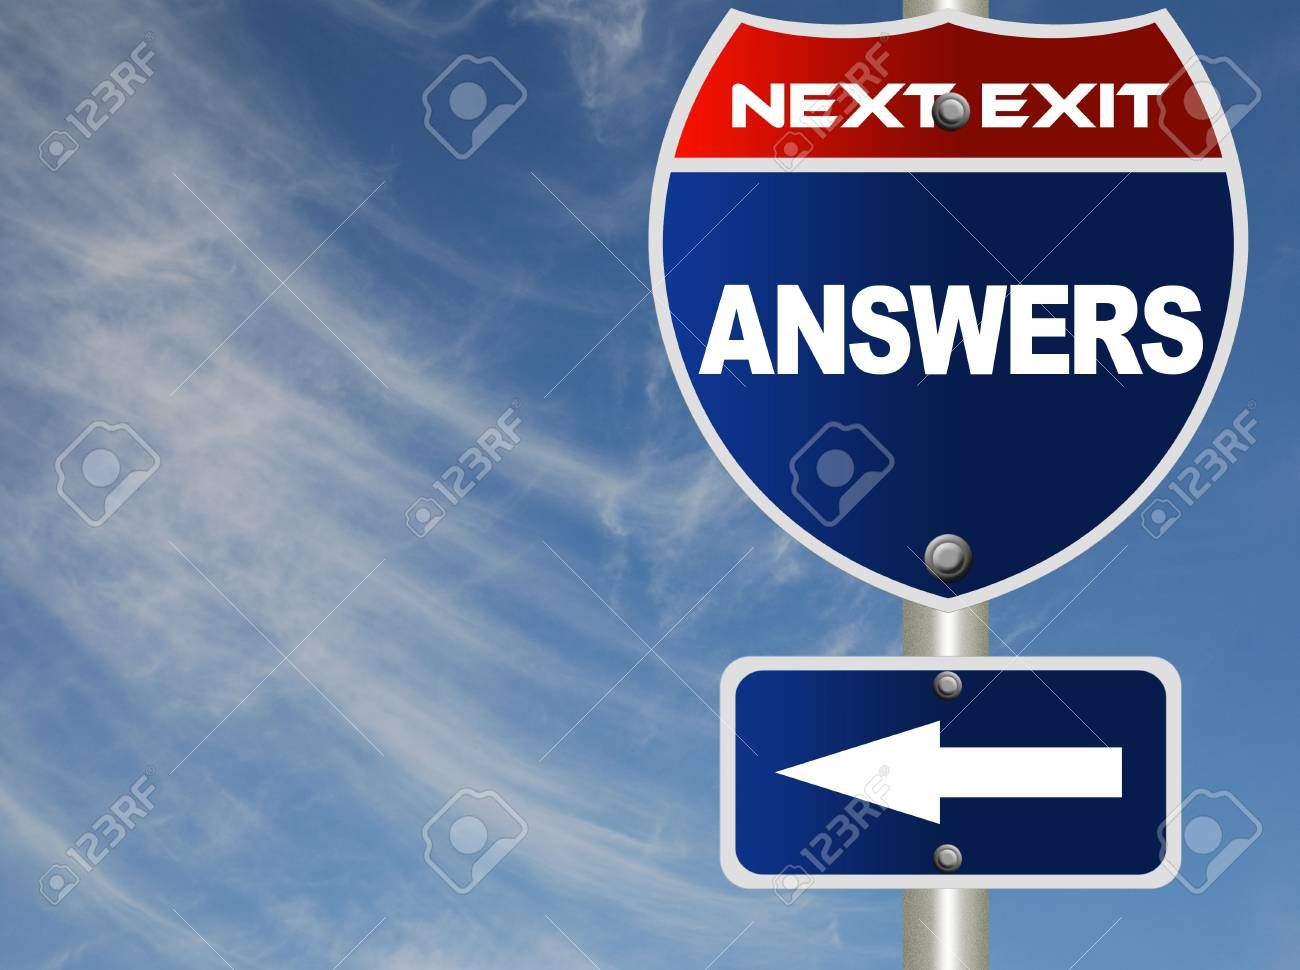 Answers road sign Stock Photo - 7543922